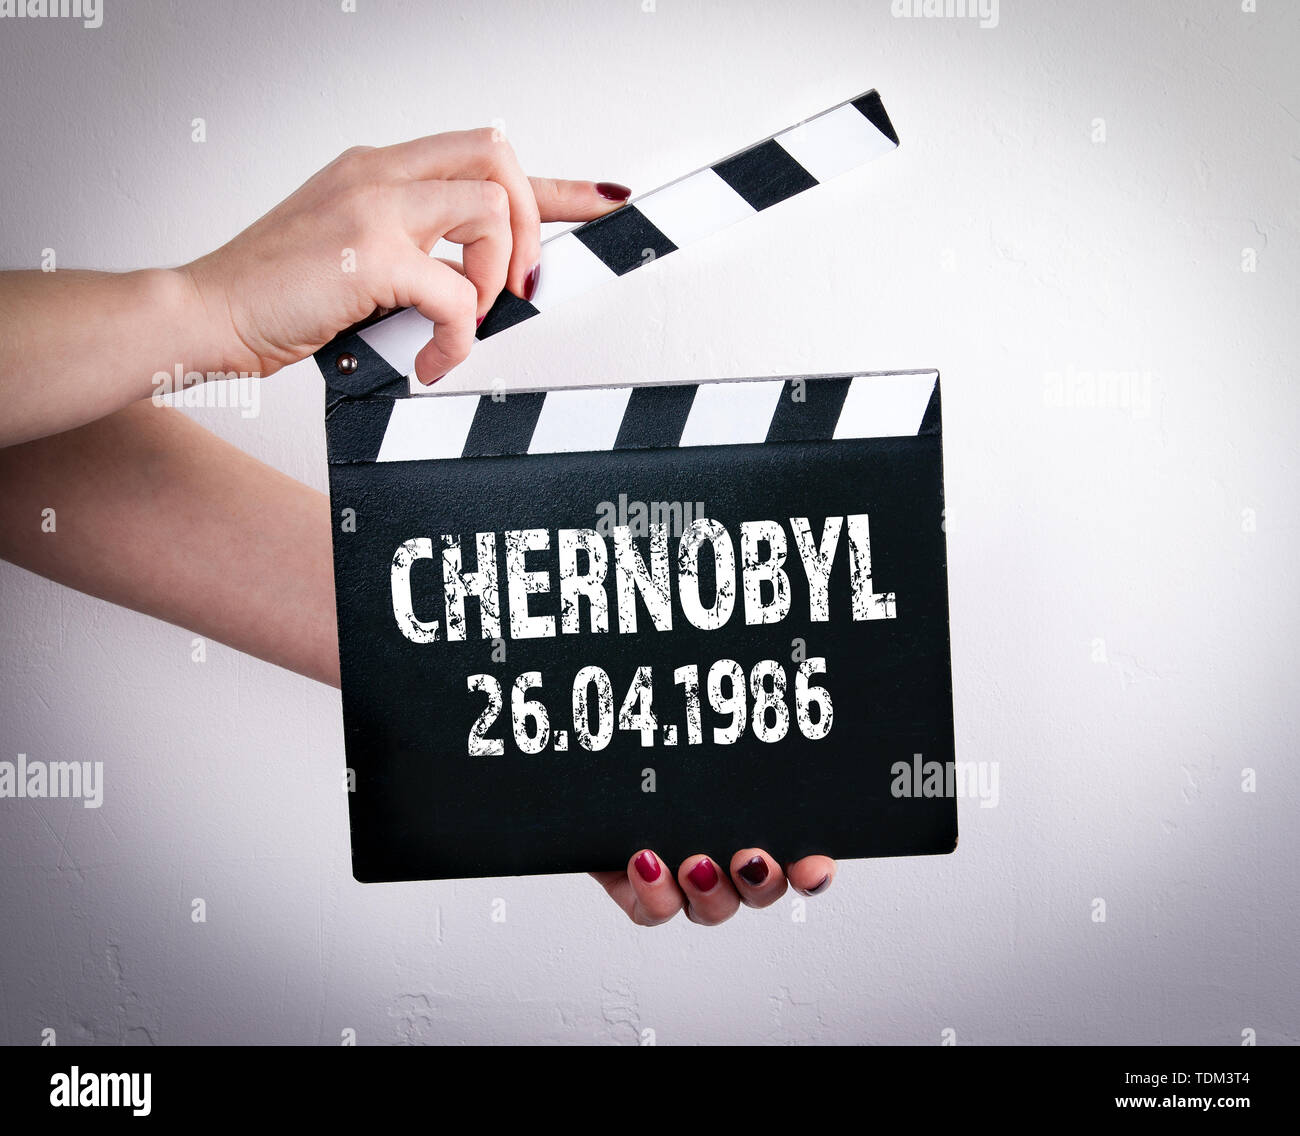 Chernobyl 26.04.1986. Female hands and movie clapper - Stock Image